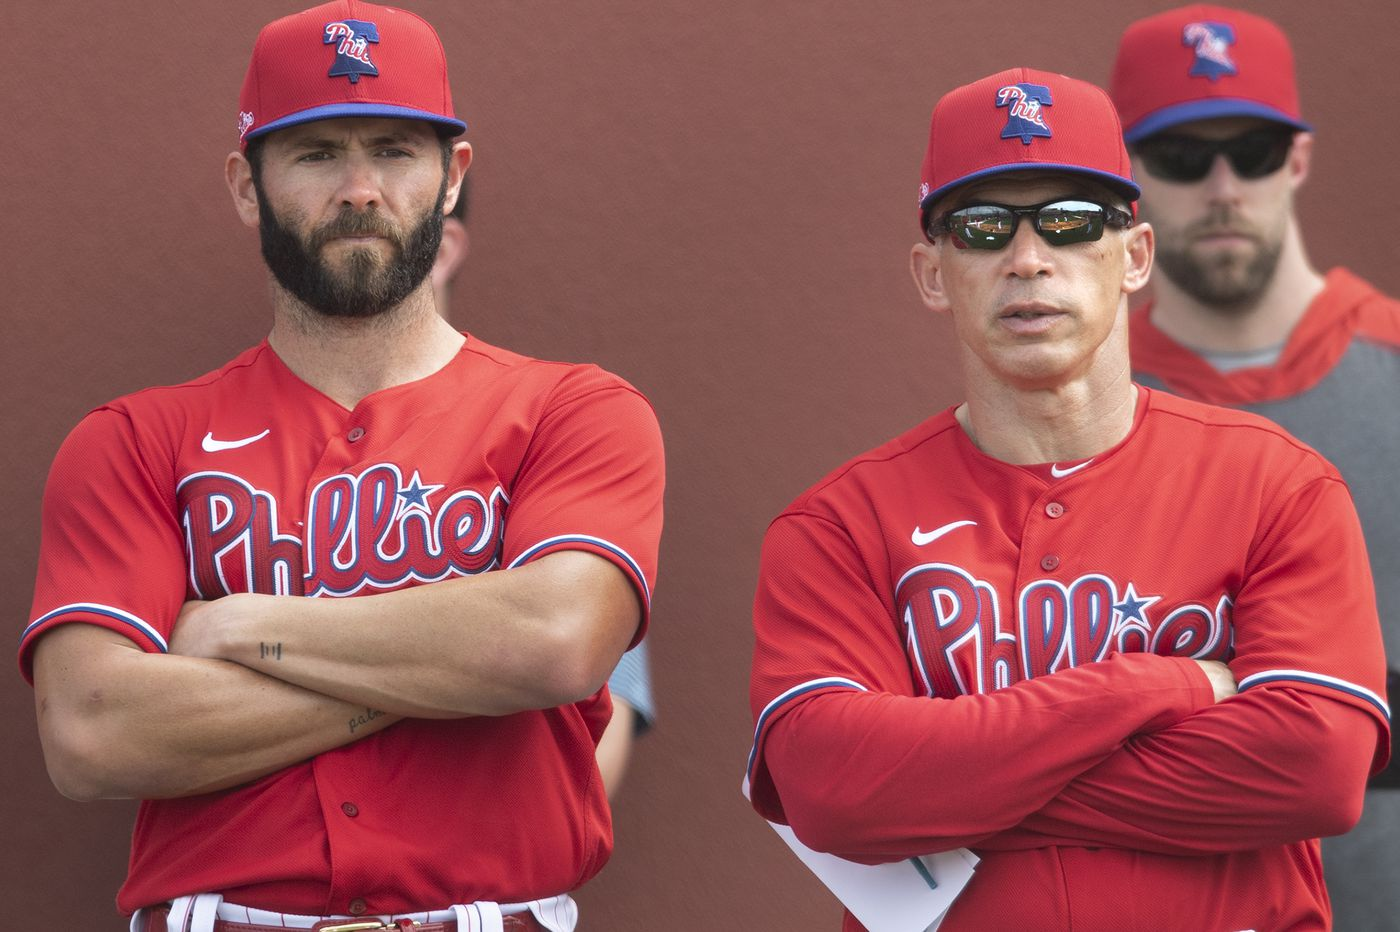 Phillies' 2020 fortunes will hinge on these three players | Scott Lauber